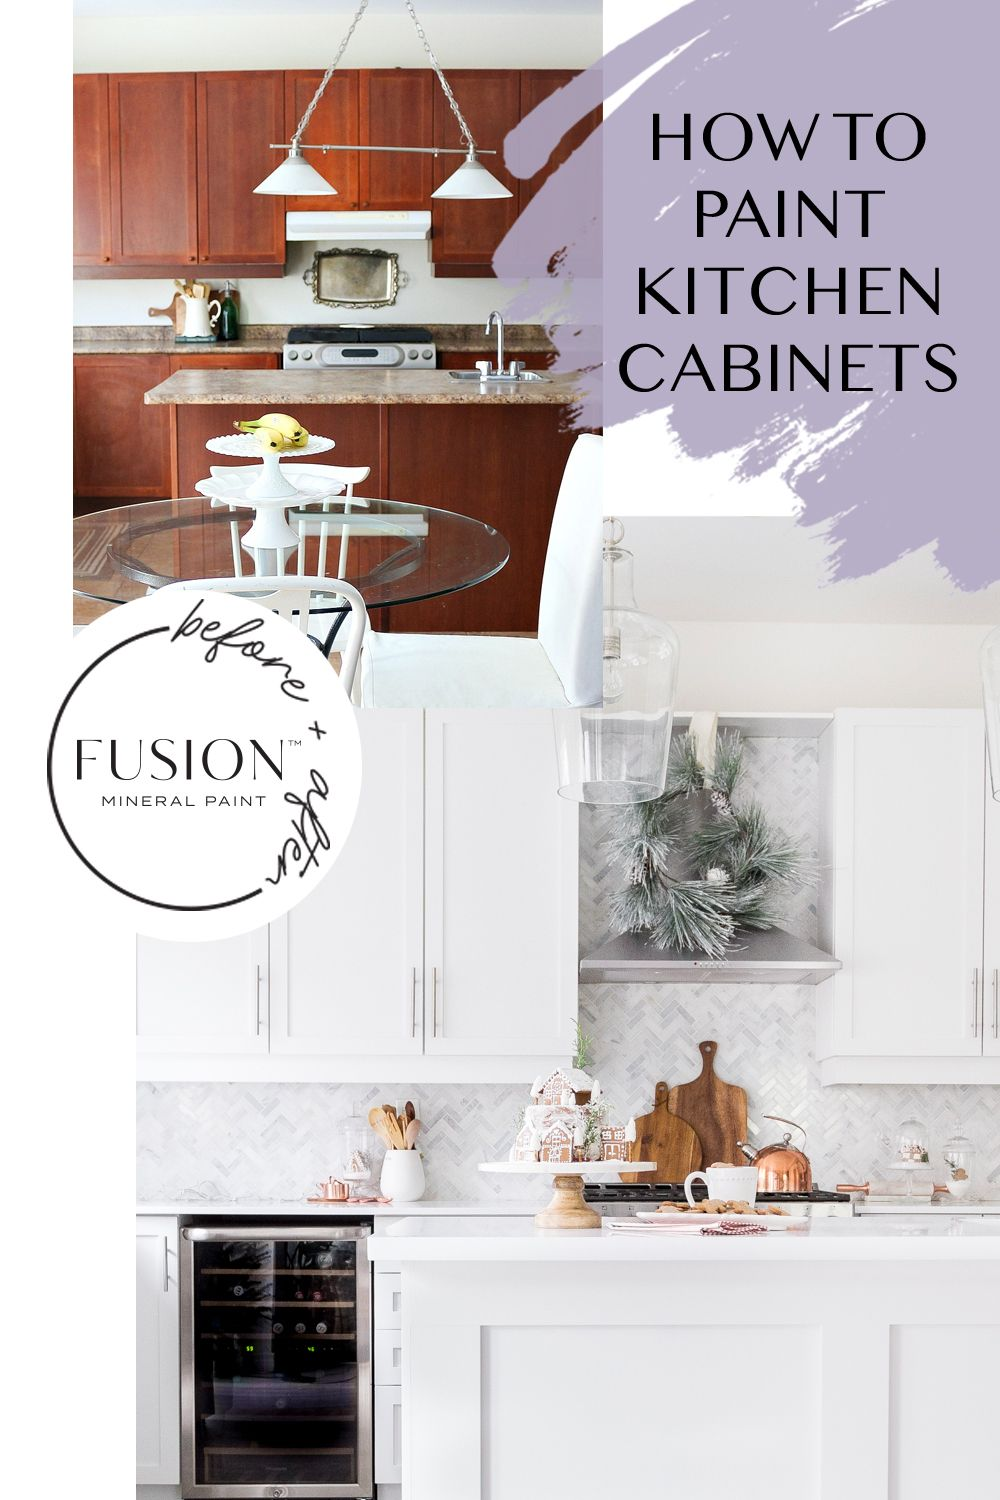 How To Paint Kitchen Cabinets Fusion Mineral Paint Painting Kitchen Cabinets Kitchen Paint Mineral Paint